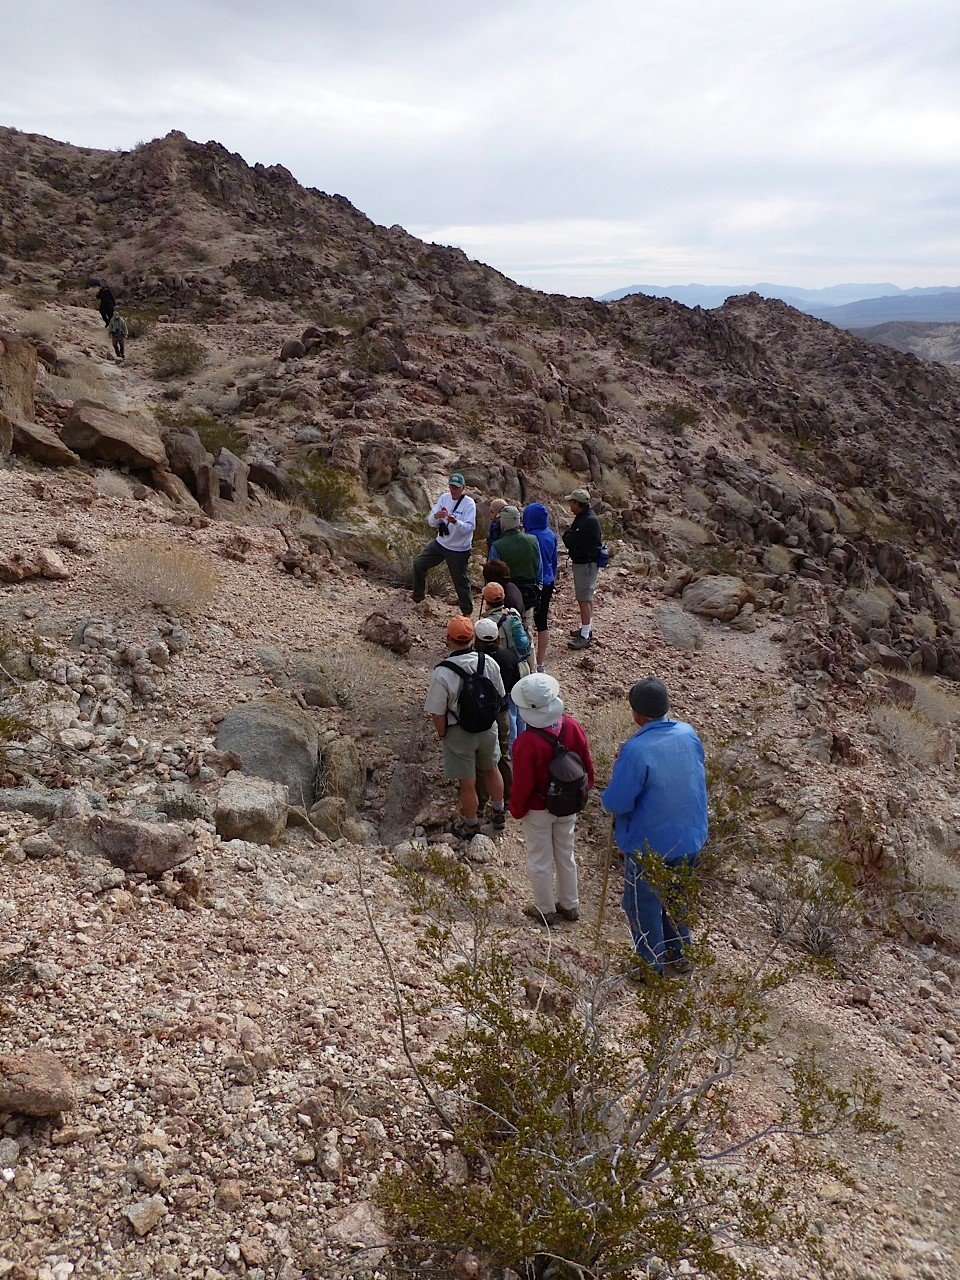 Take a free geology lesson at Anza-Borrego Desert State Park